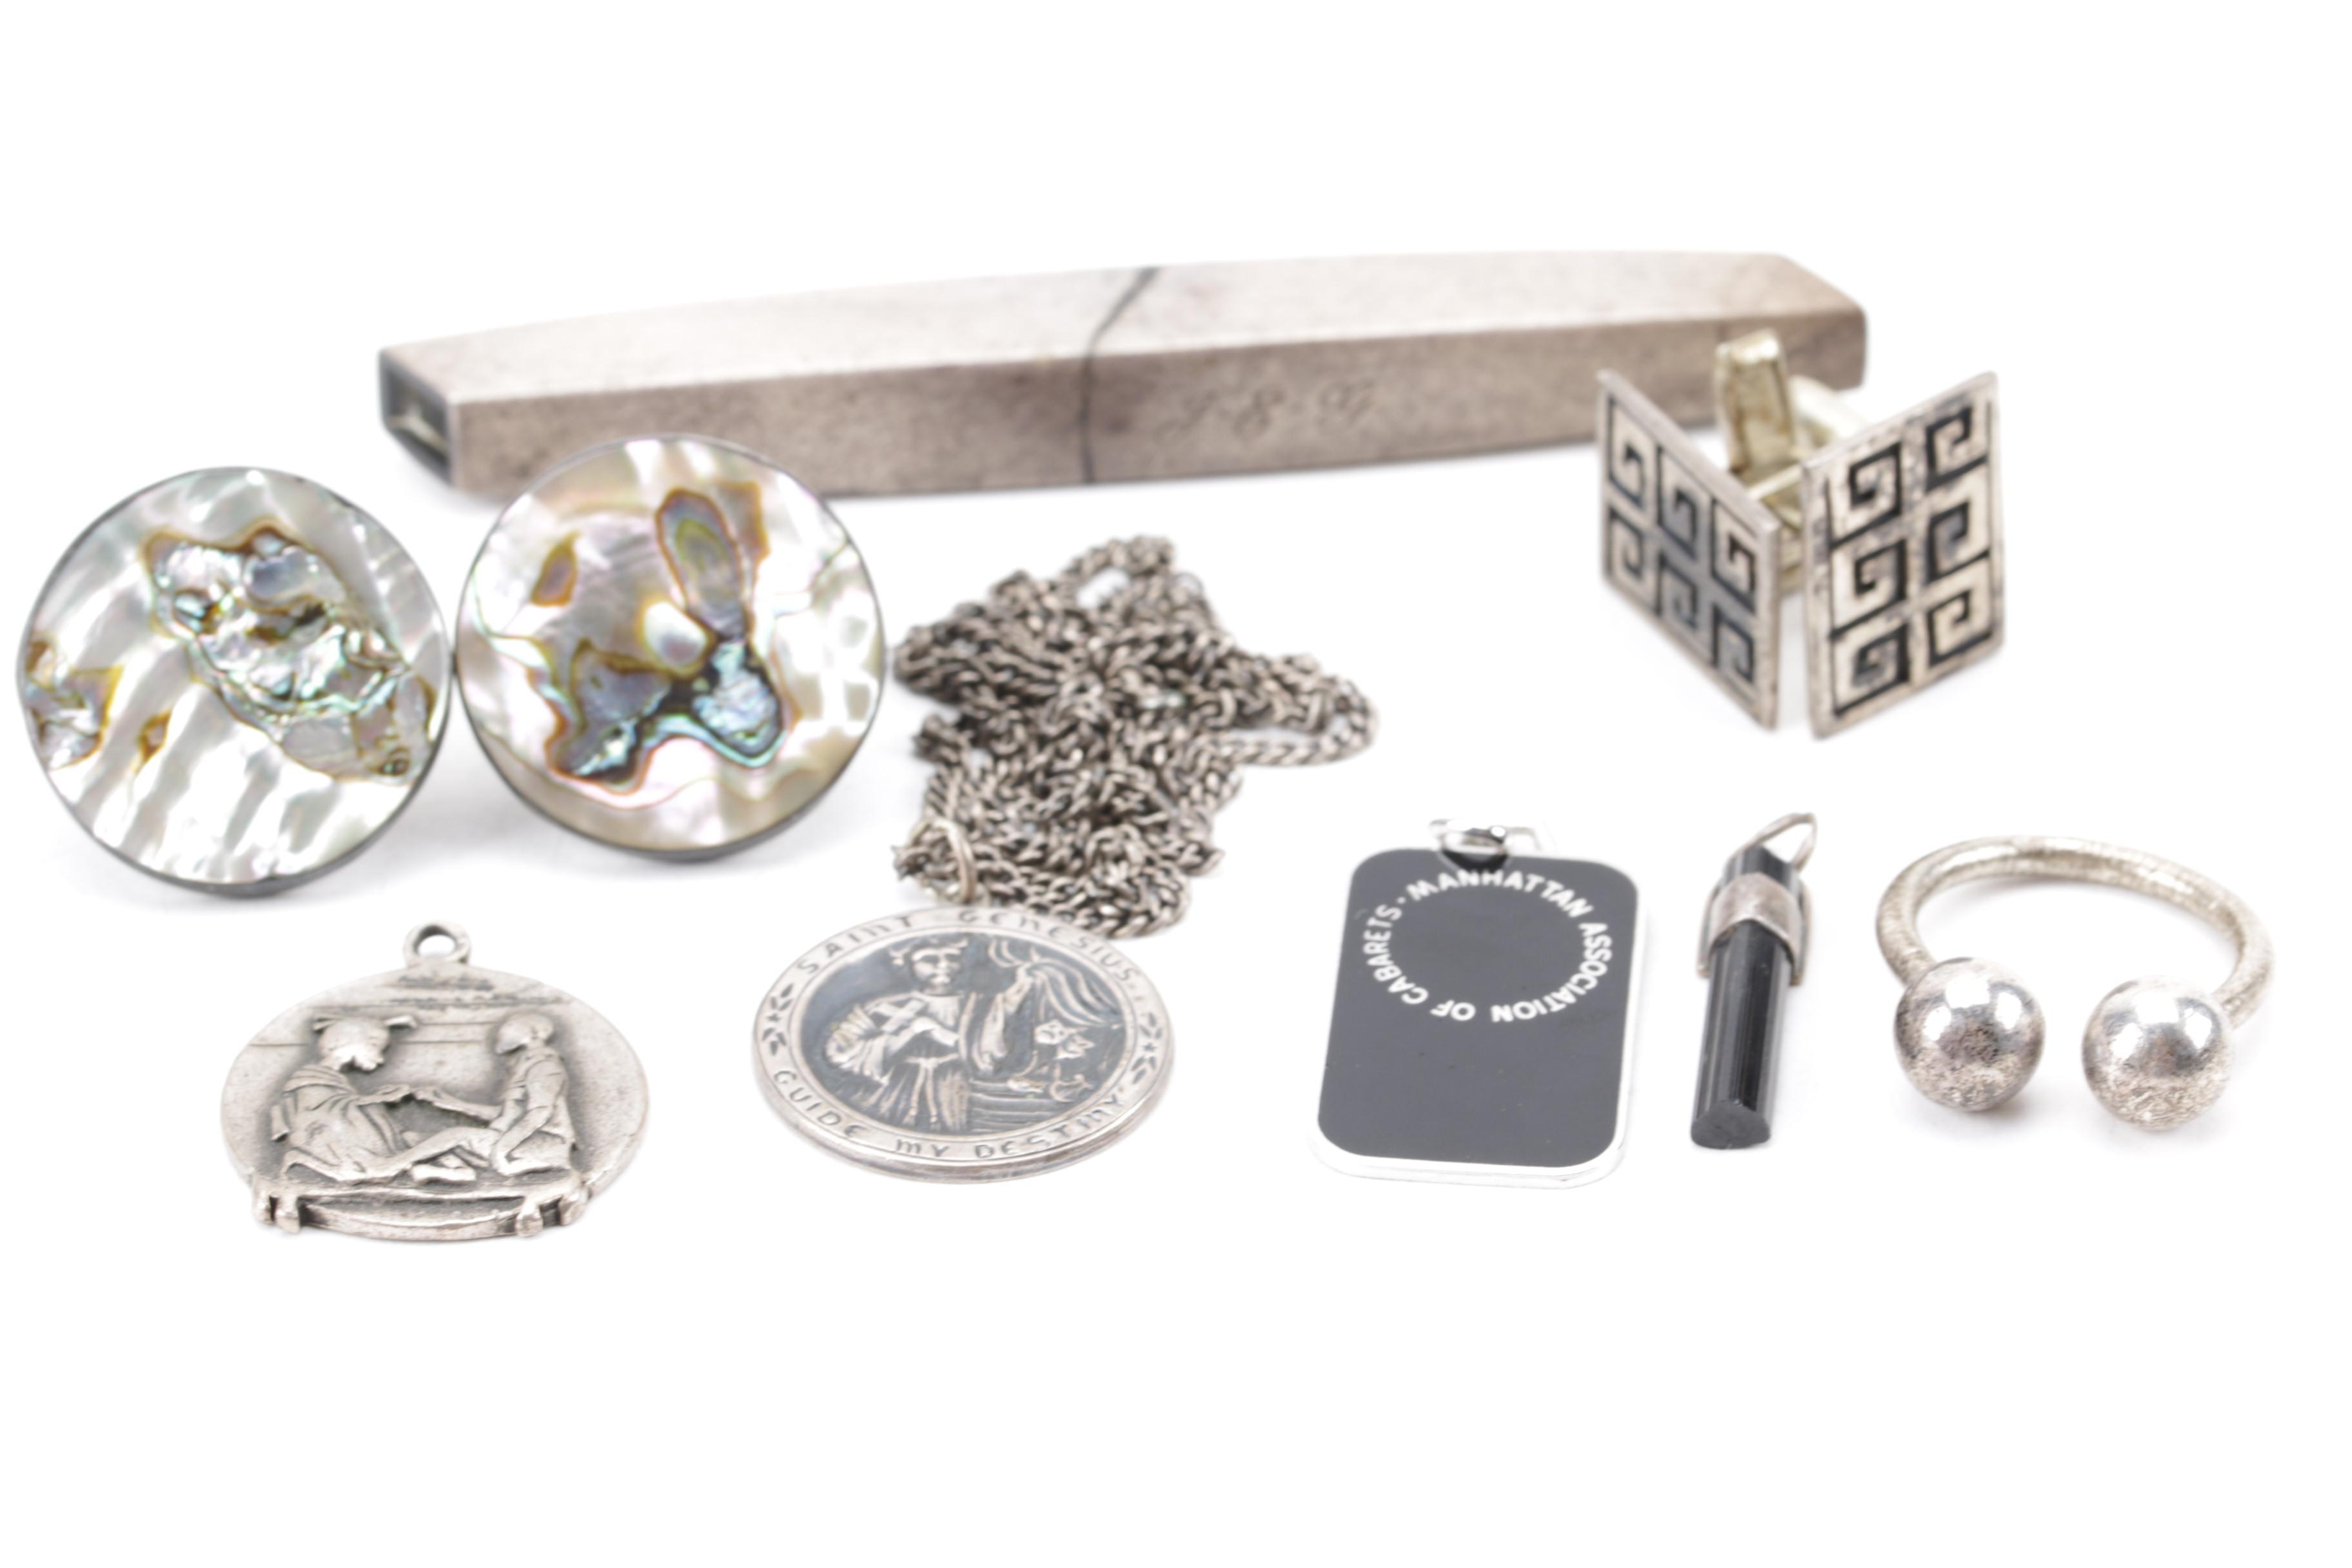 Sterling Silver Jewelry and Accessory Assortment